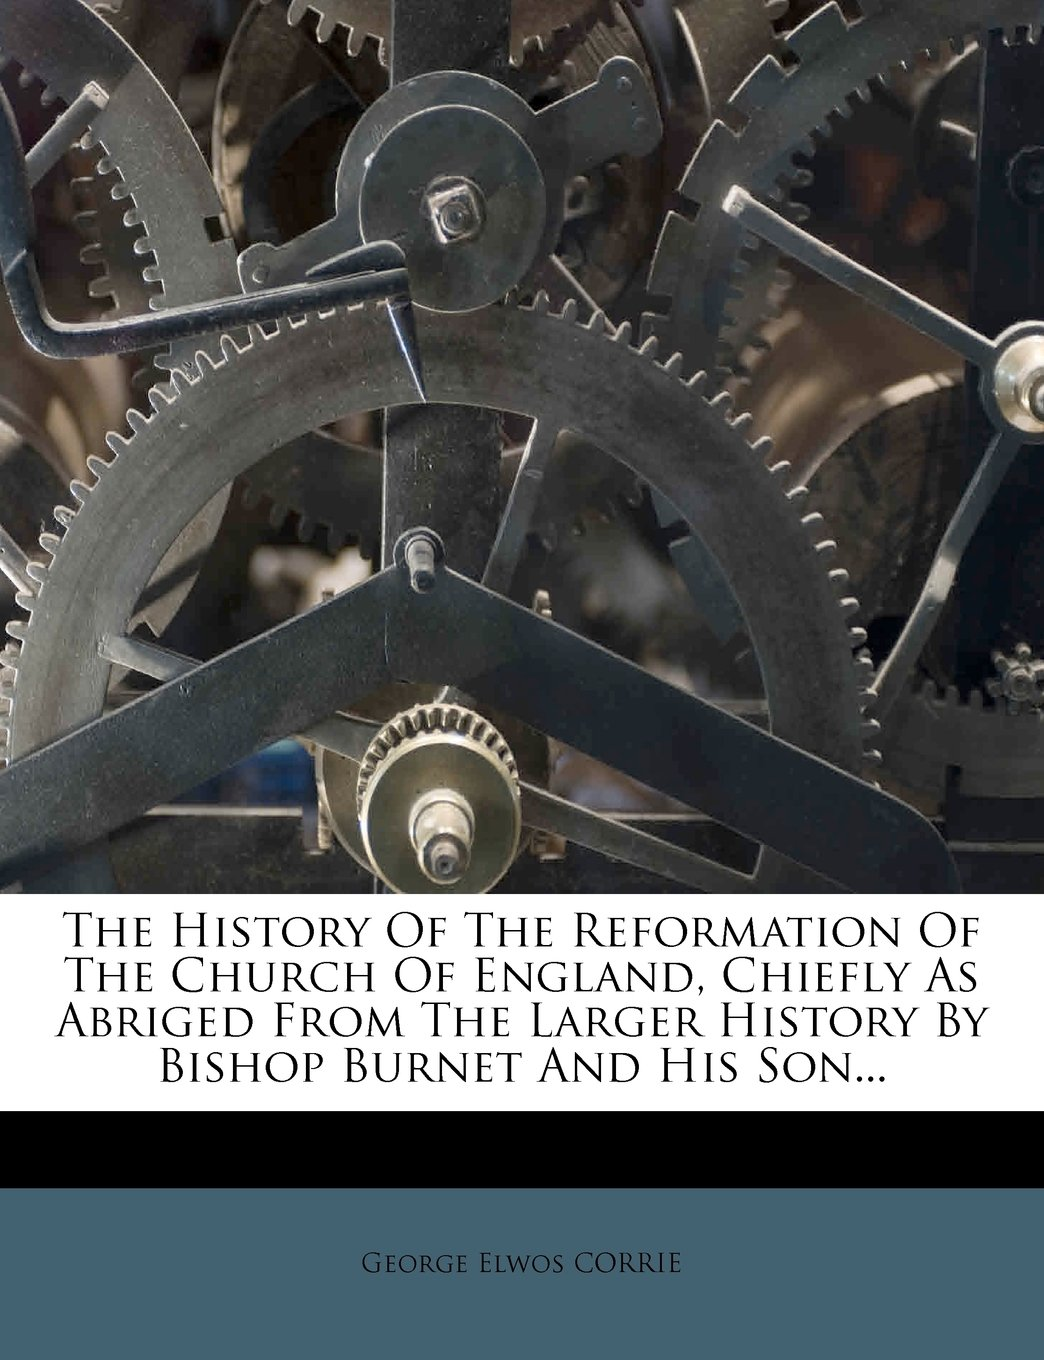 Read Online The History Of The Reformation Of The Church Of England, Chiefly As Abriged From The Larger History By Bishop Burnet And His Son... pdf